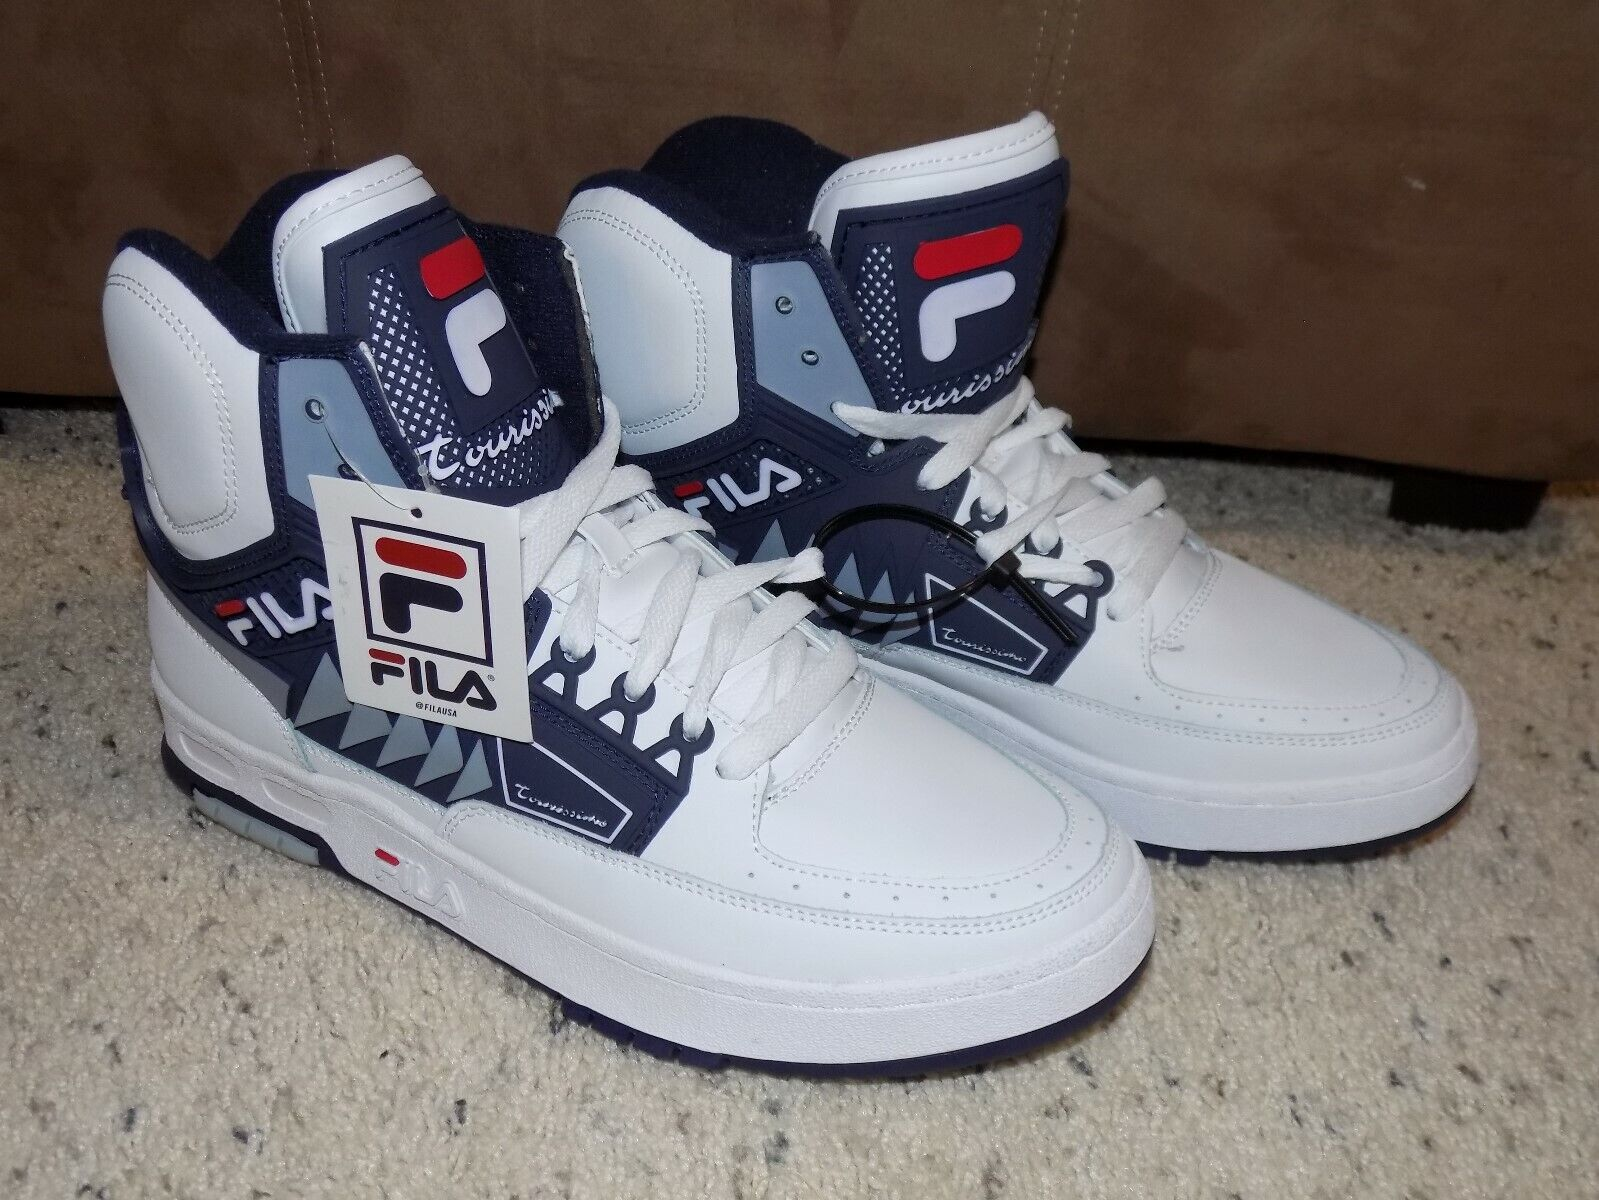 New w/ Tags Mens 10 Fila Tourissimo Limited Edition White & Blue High Top Shoes